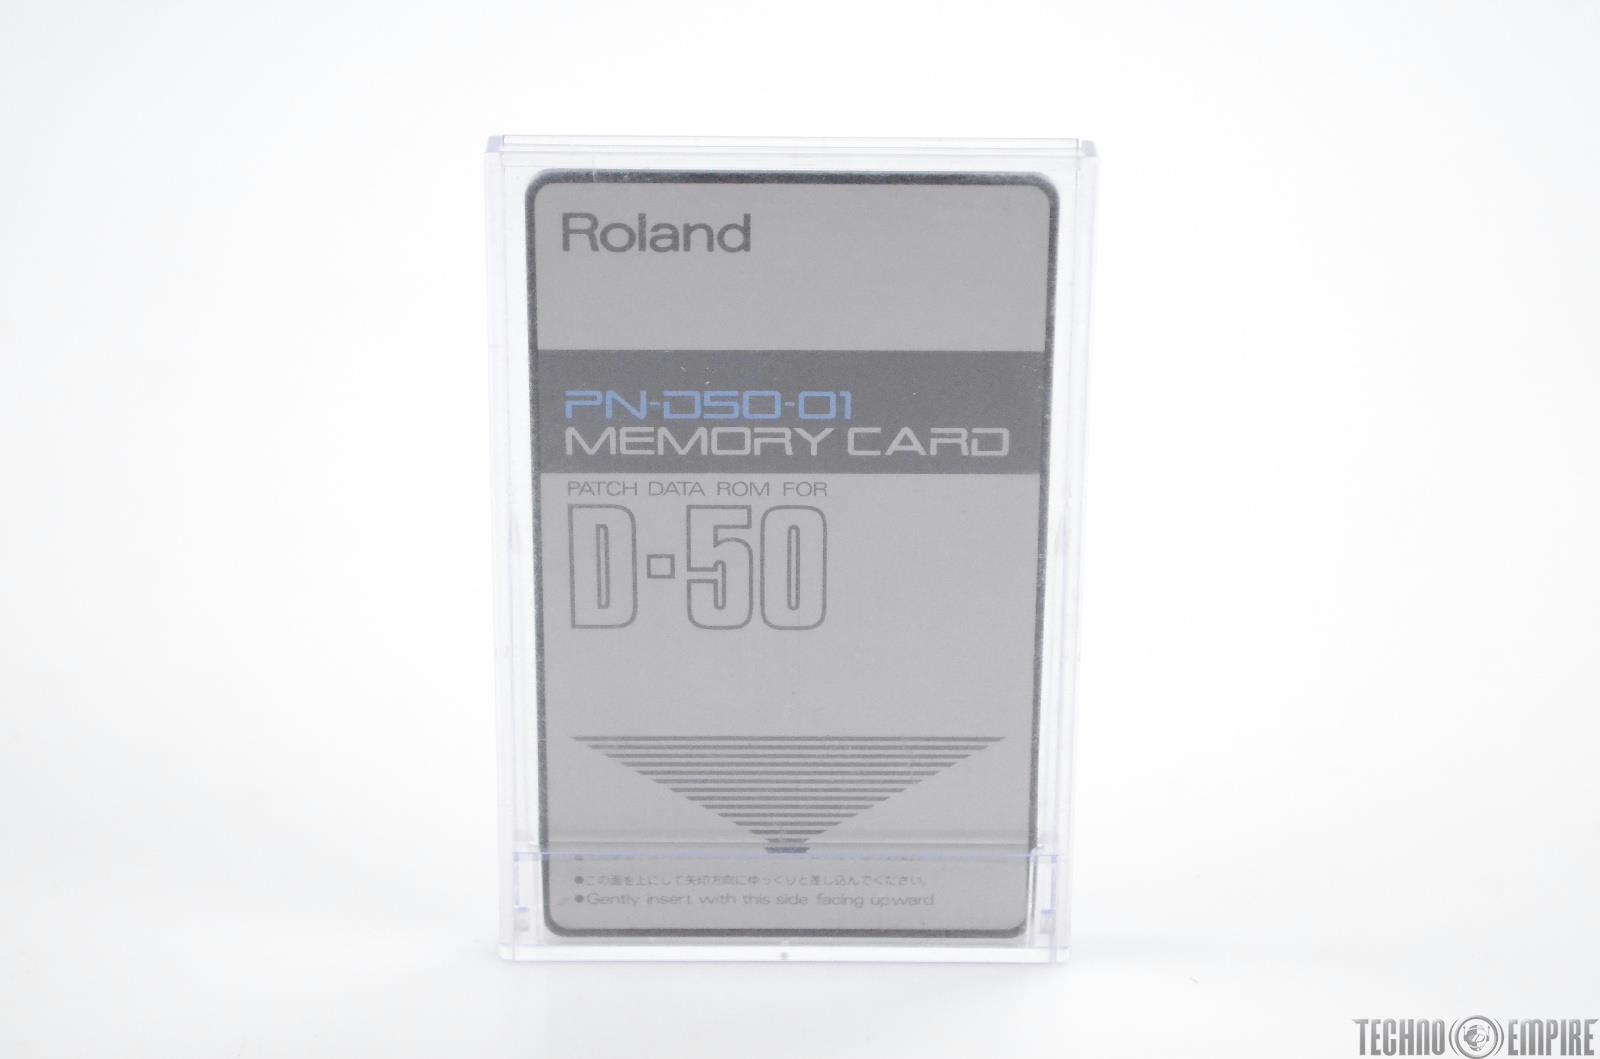 Roland PN-D50-01 Memory Card Patch Data ROM for D-50 w/ Case PND5001 #31116